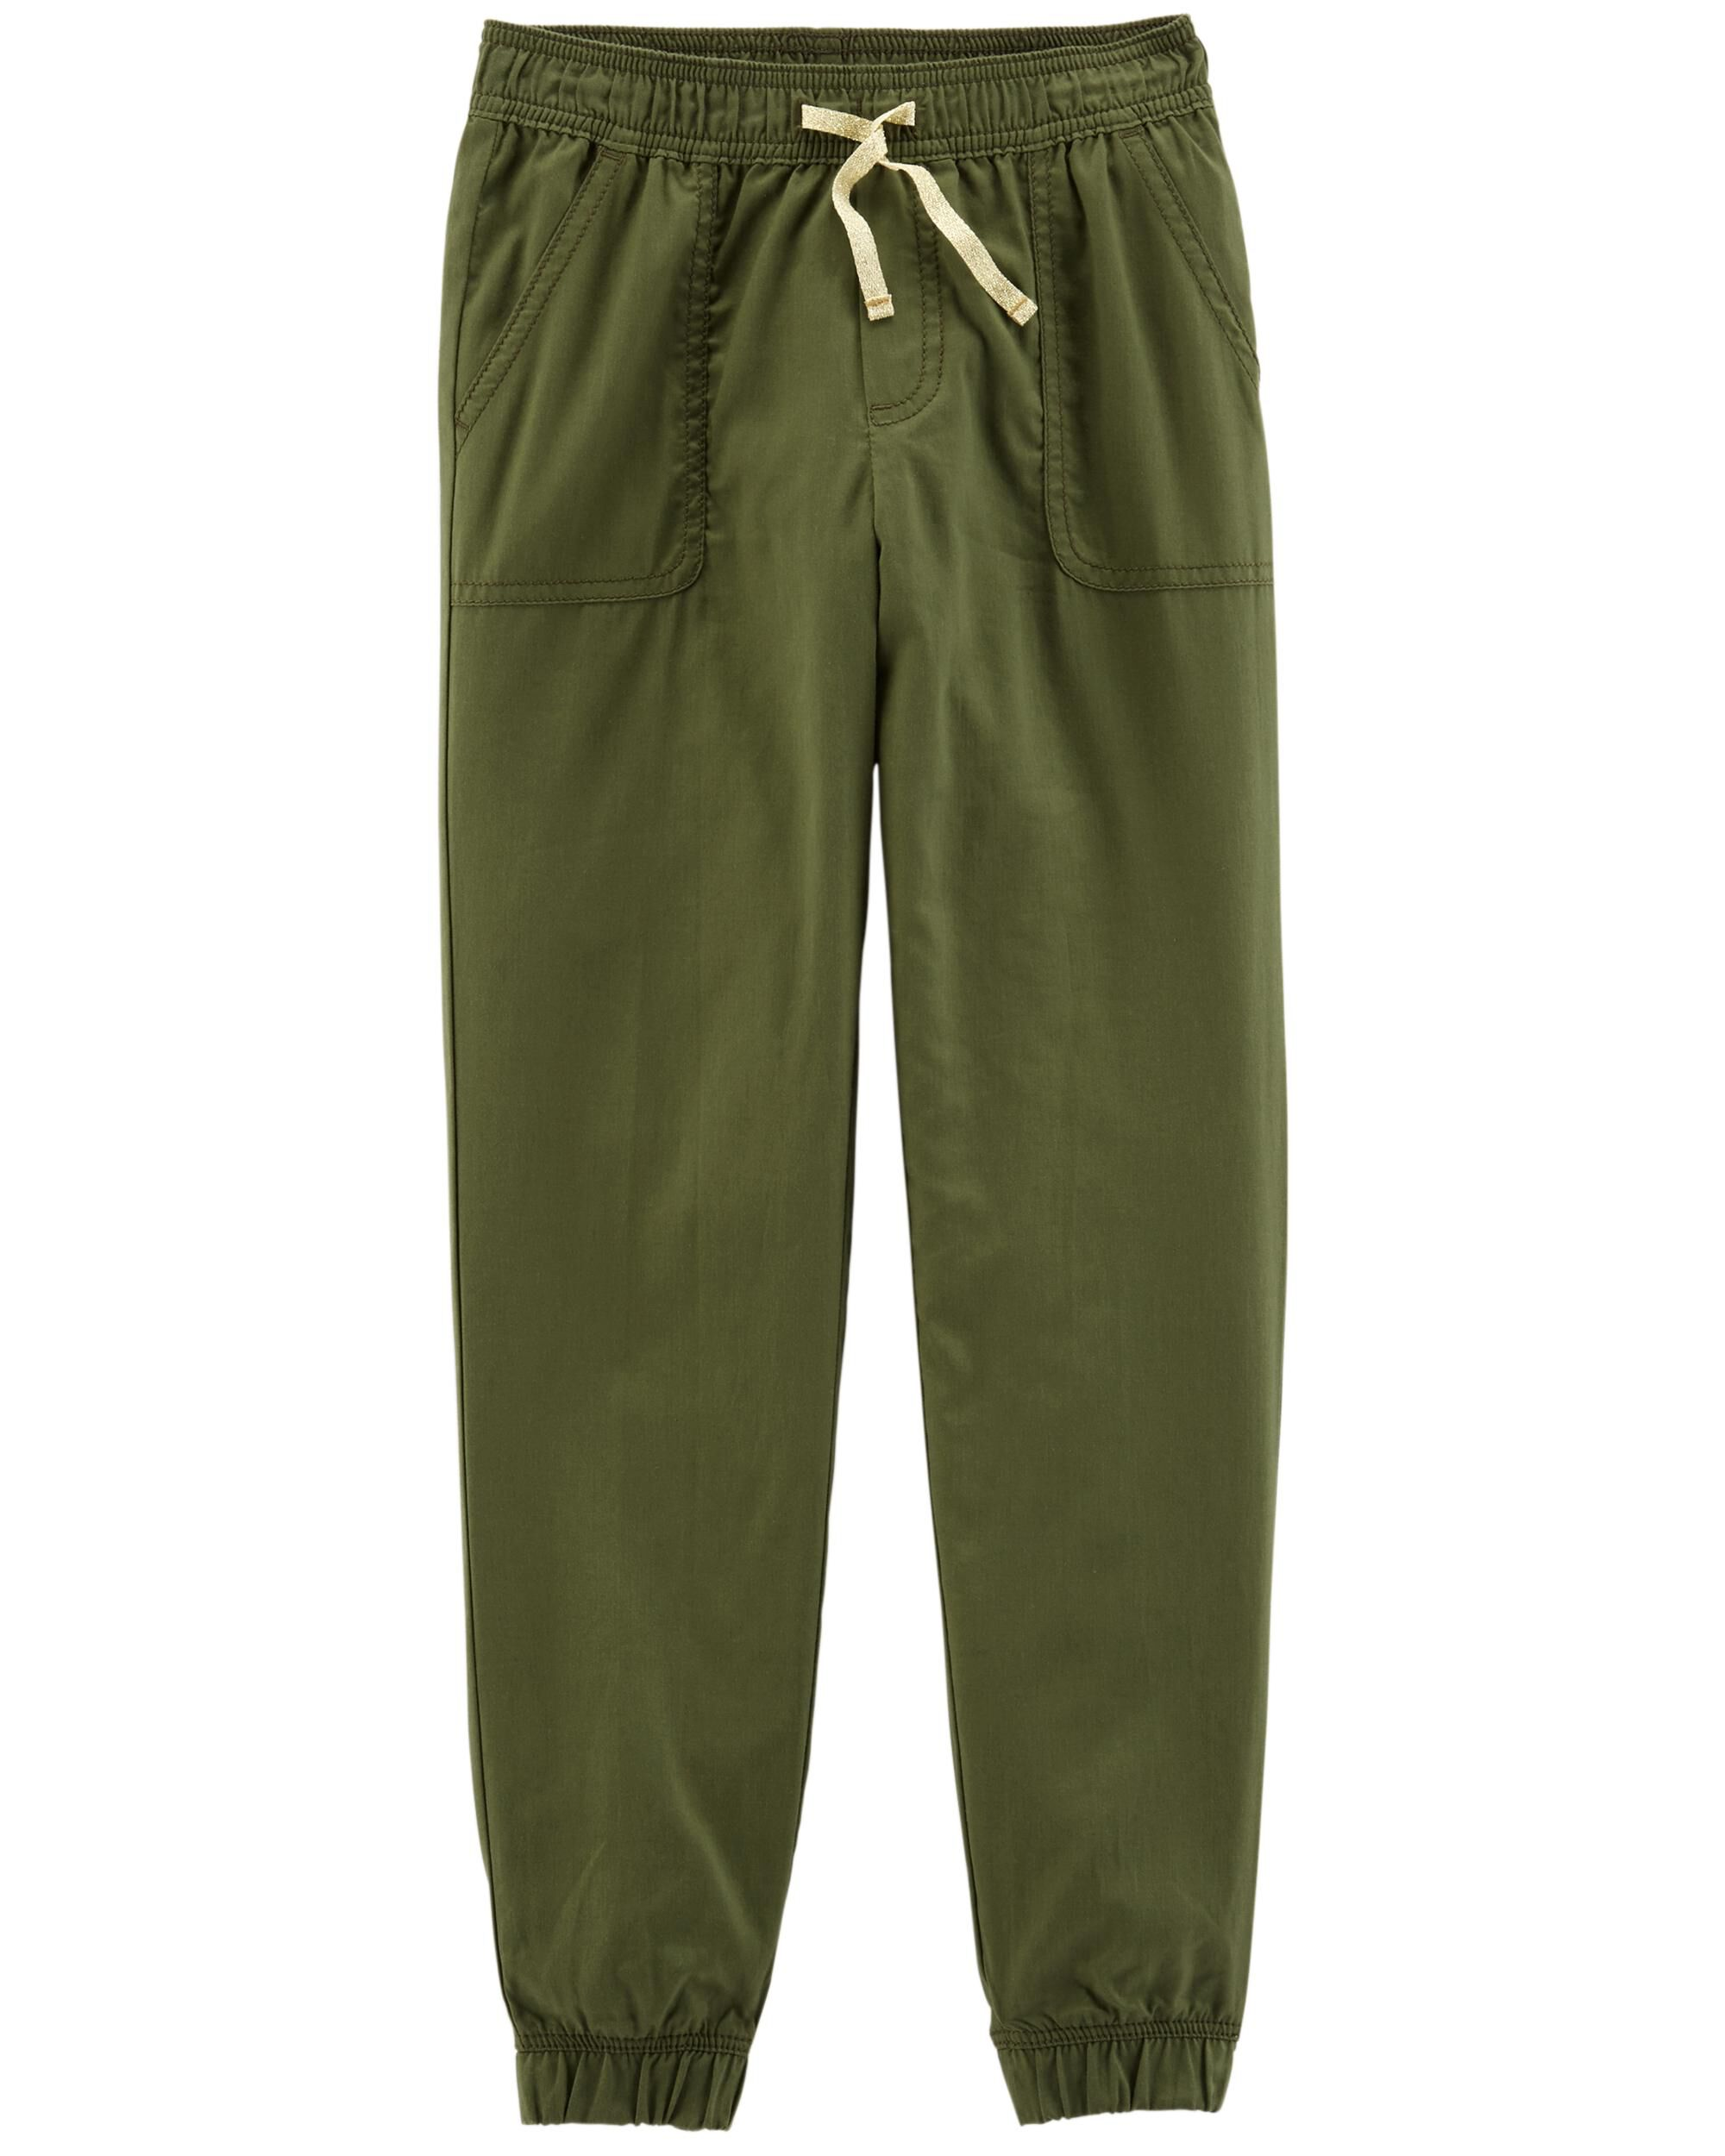 *Clearance*  Pull-On Twill Pants